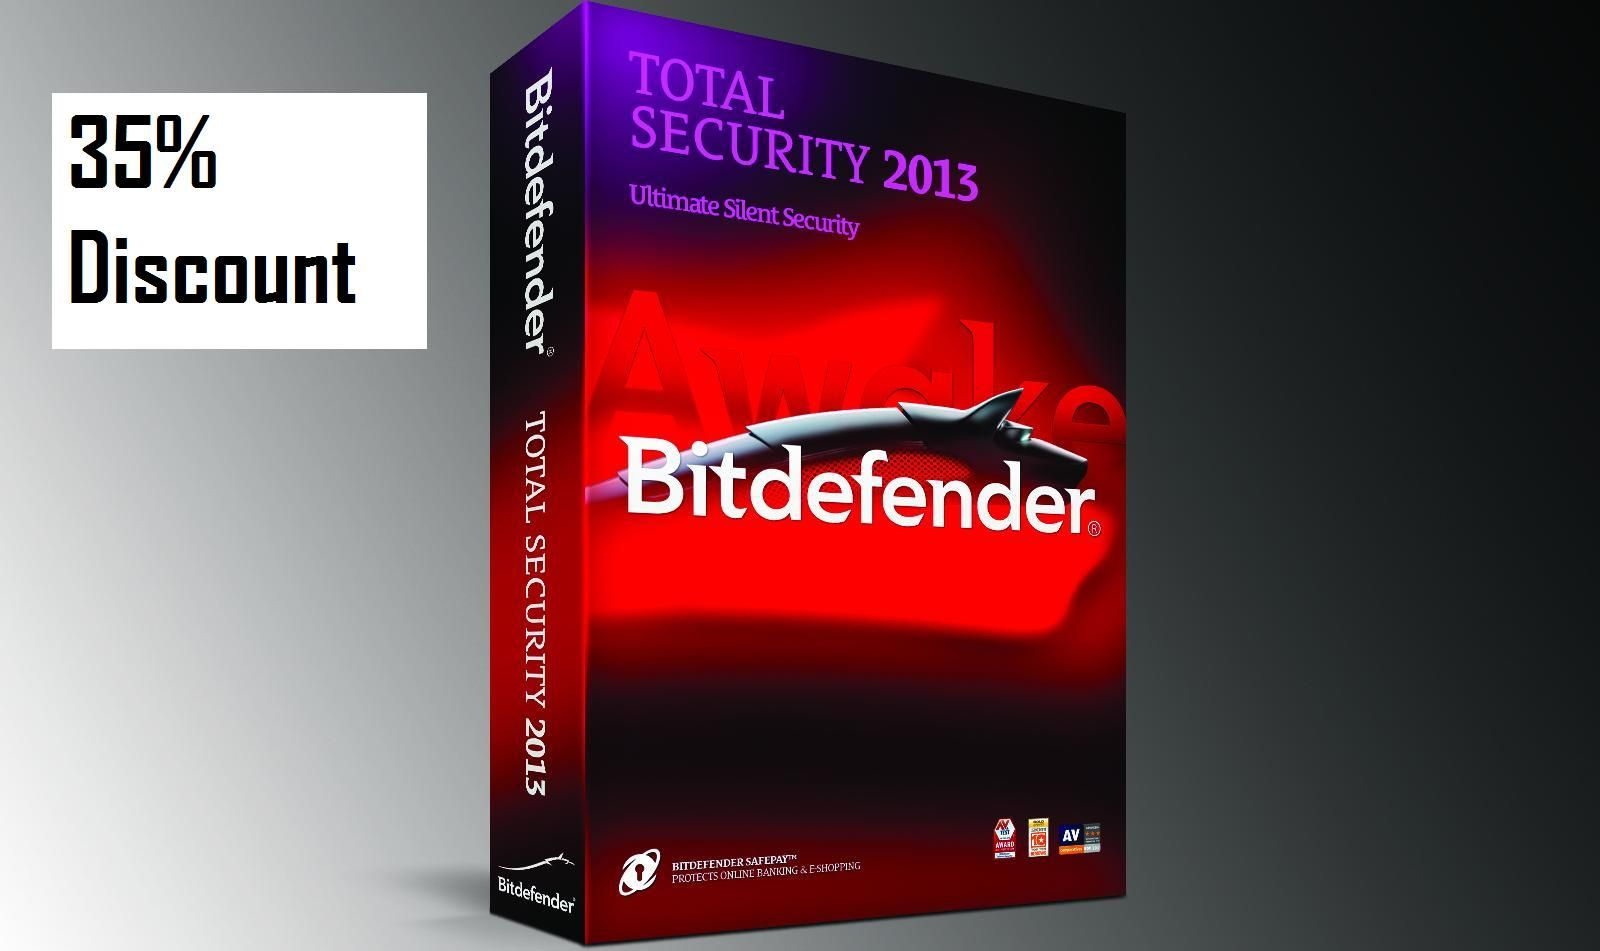 Bitdefender 2013 Please Find Latest Promotions Available From Now Till End Of Dec 2012 While Stocks L Technology Solutions Norton Internet Security Giveaway